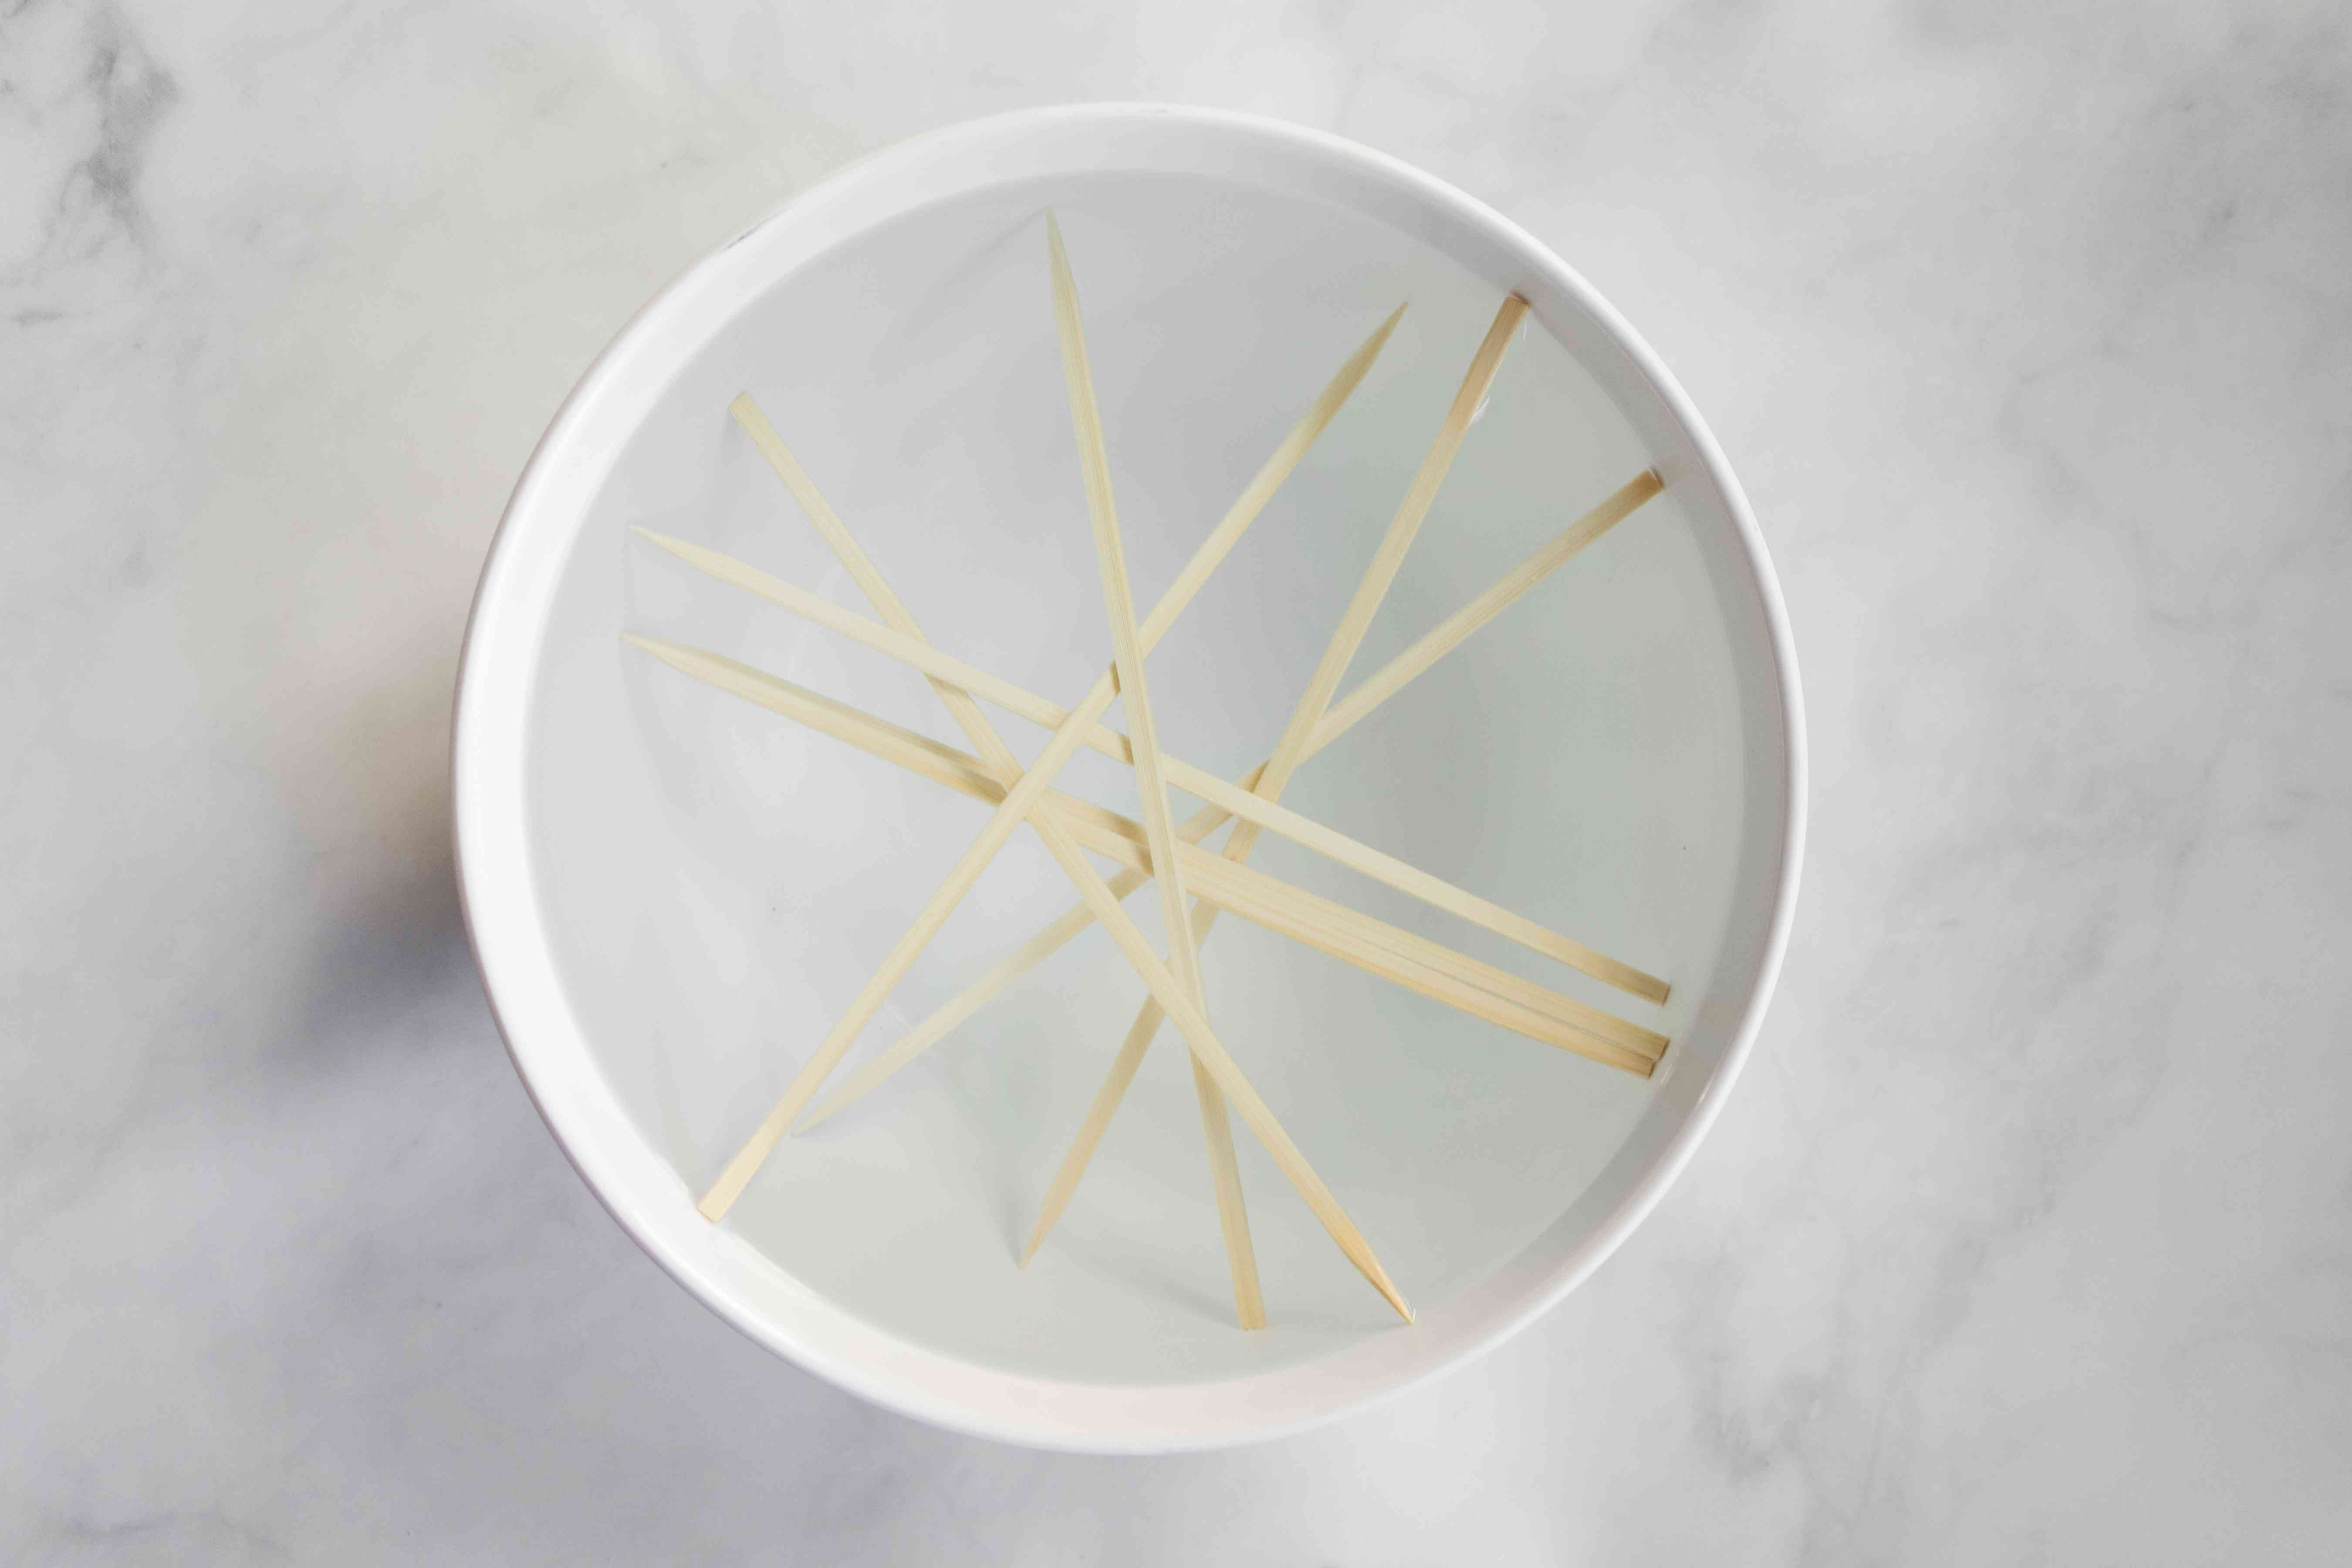 bamboo sticks in a bowl with water